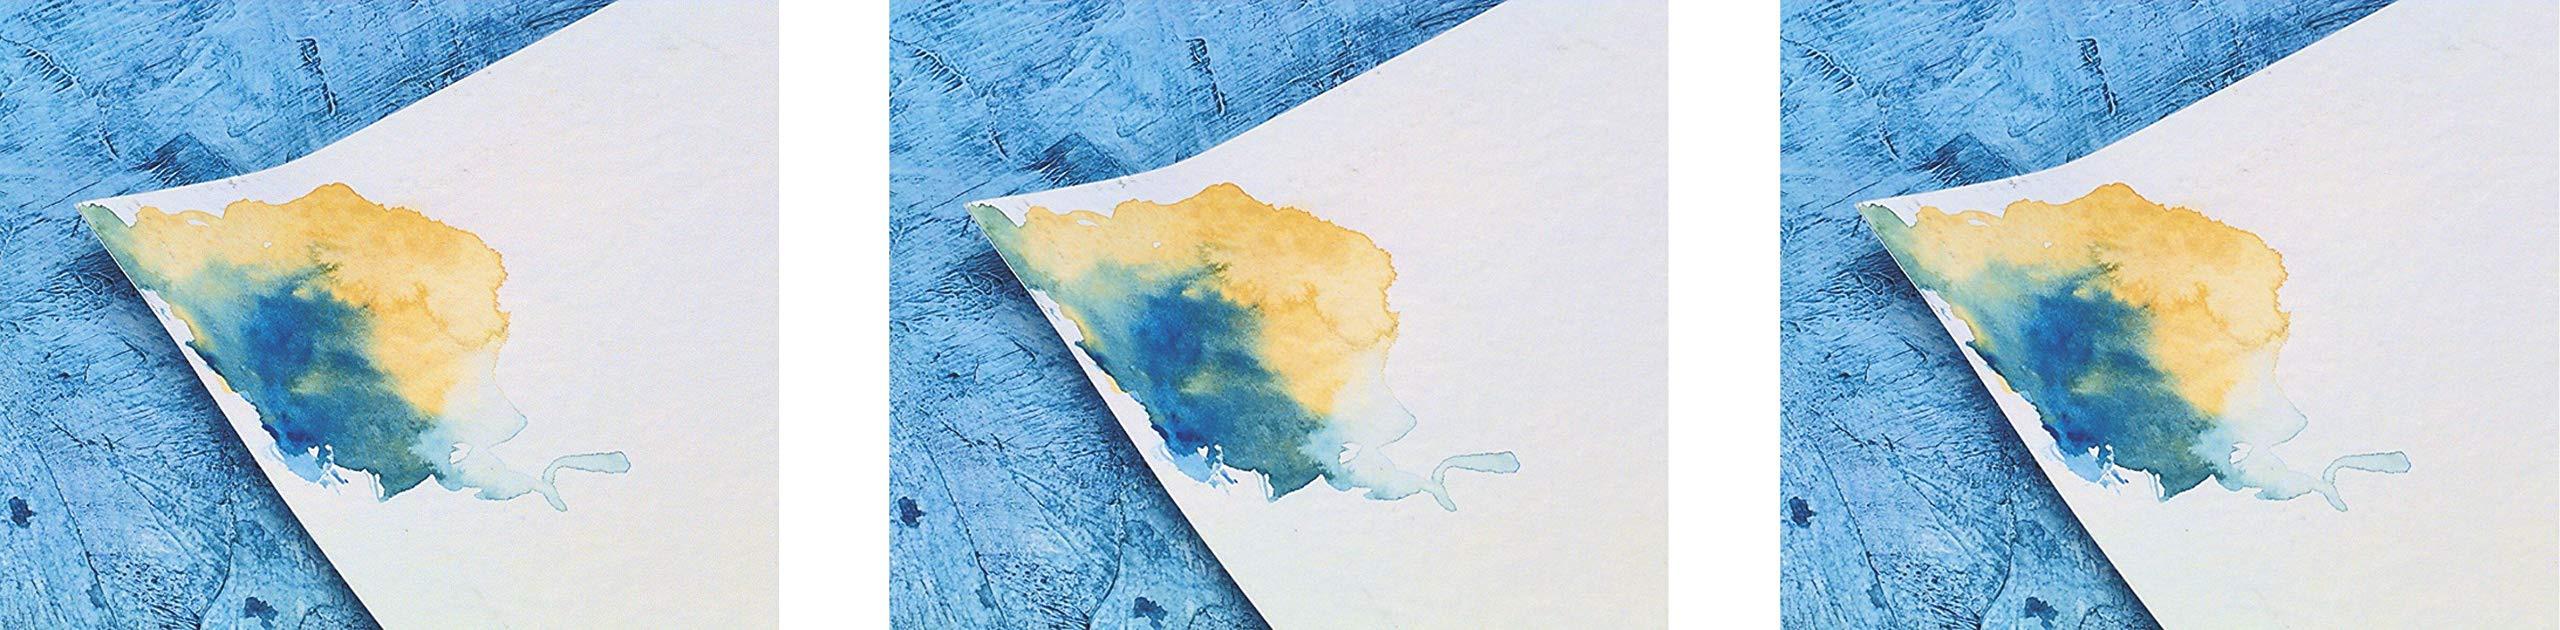 Strathmore 400 Artist Watercolor Paper, 140 lb, 22 x 30 Inches, 10 Sheets (Тhree Pаck)